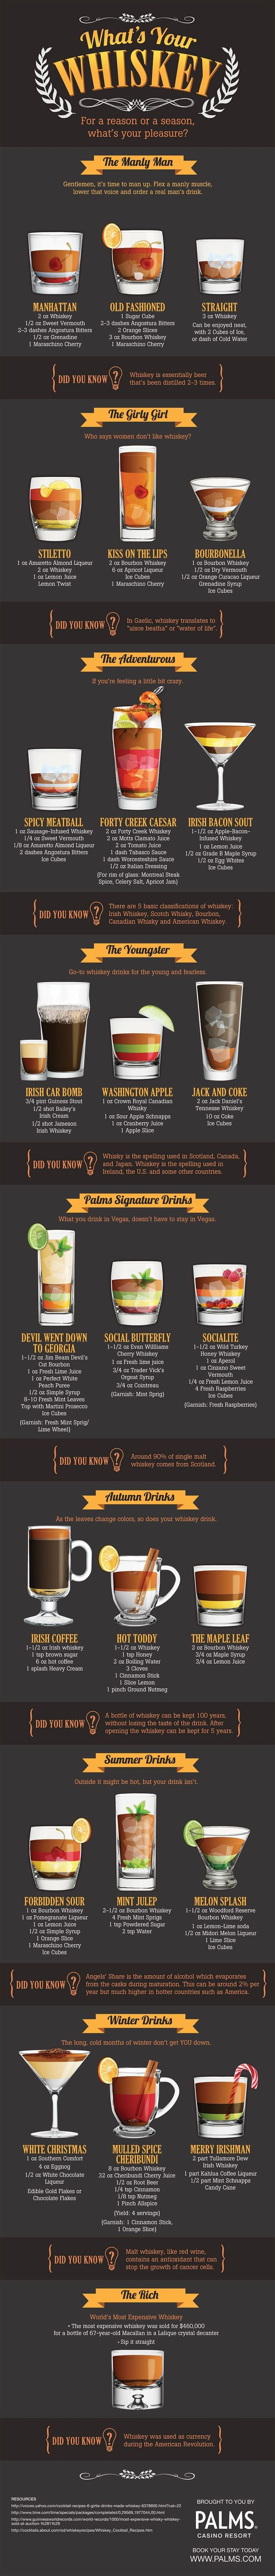 What's Your Whiskey? #Infographic #Holiday #Whiskey #infografía